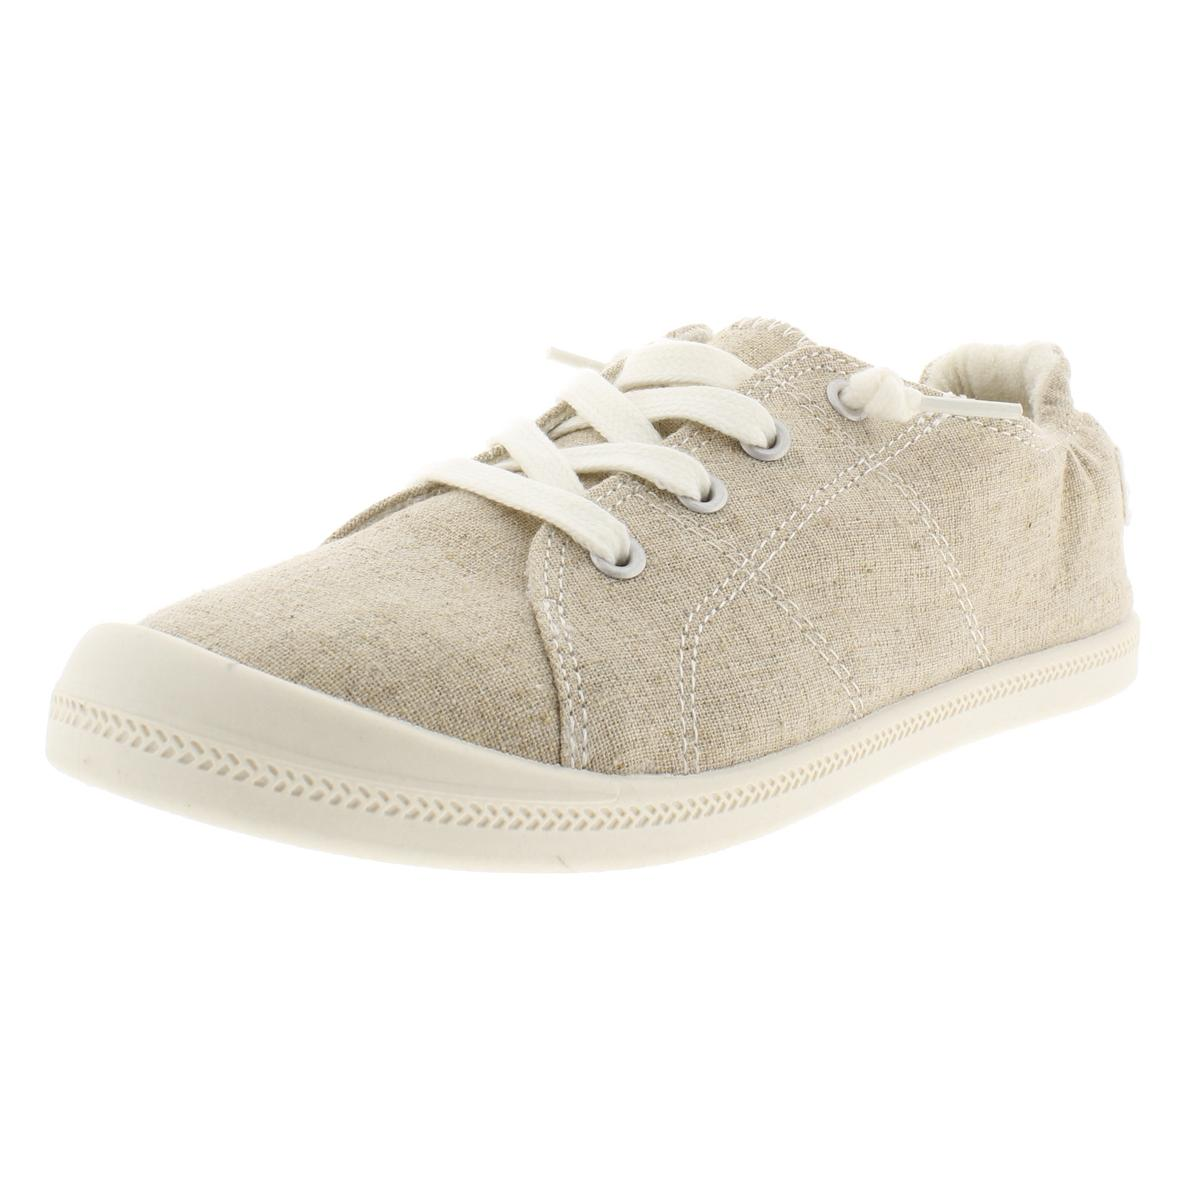 c0140954e5f Material Girl Womens Brooke Canvas Padded Insole Casual Shoes ...